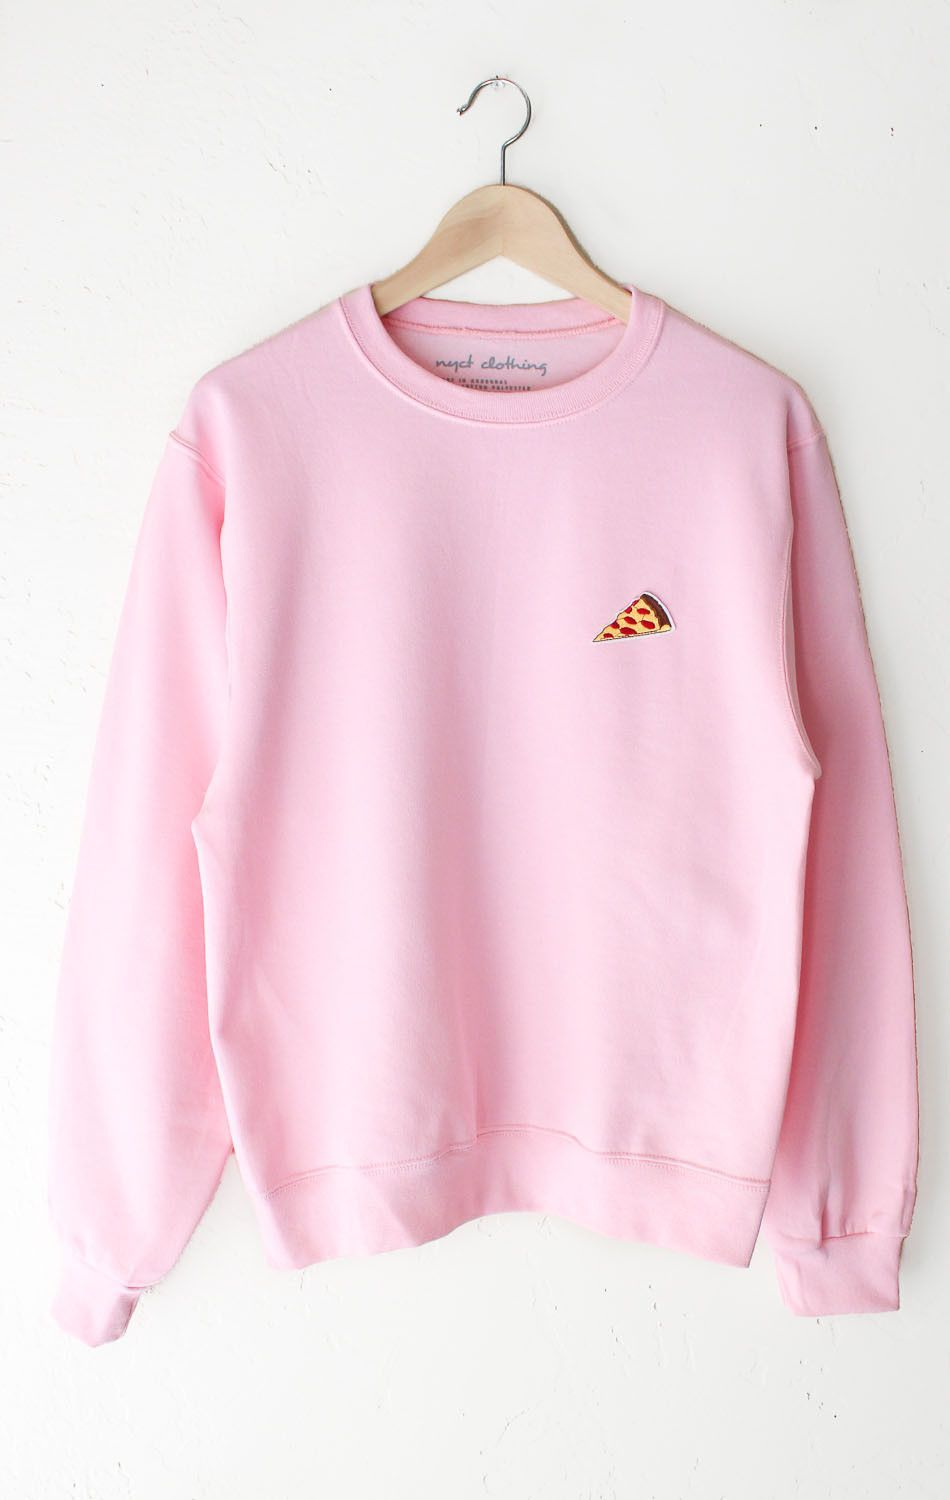 Pizza Oversized Sweater Pink Shirts Pinterest Sweaters Tendencies Black Logo Pullover Hitam Xl Description Size Guide Details Crewneck Sweatshirt In Classic With Patch On Front Left Chest Brand Nyct Clothing